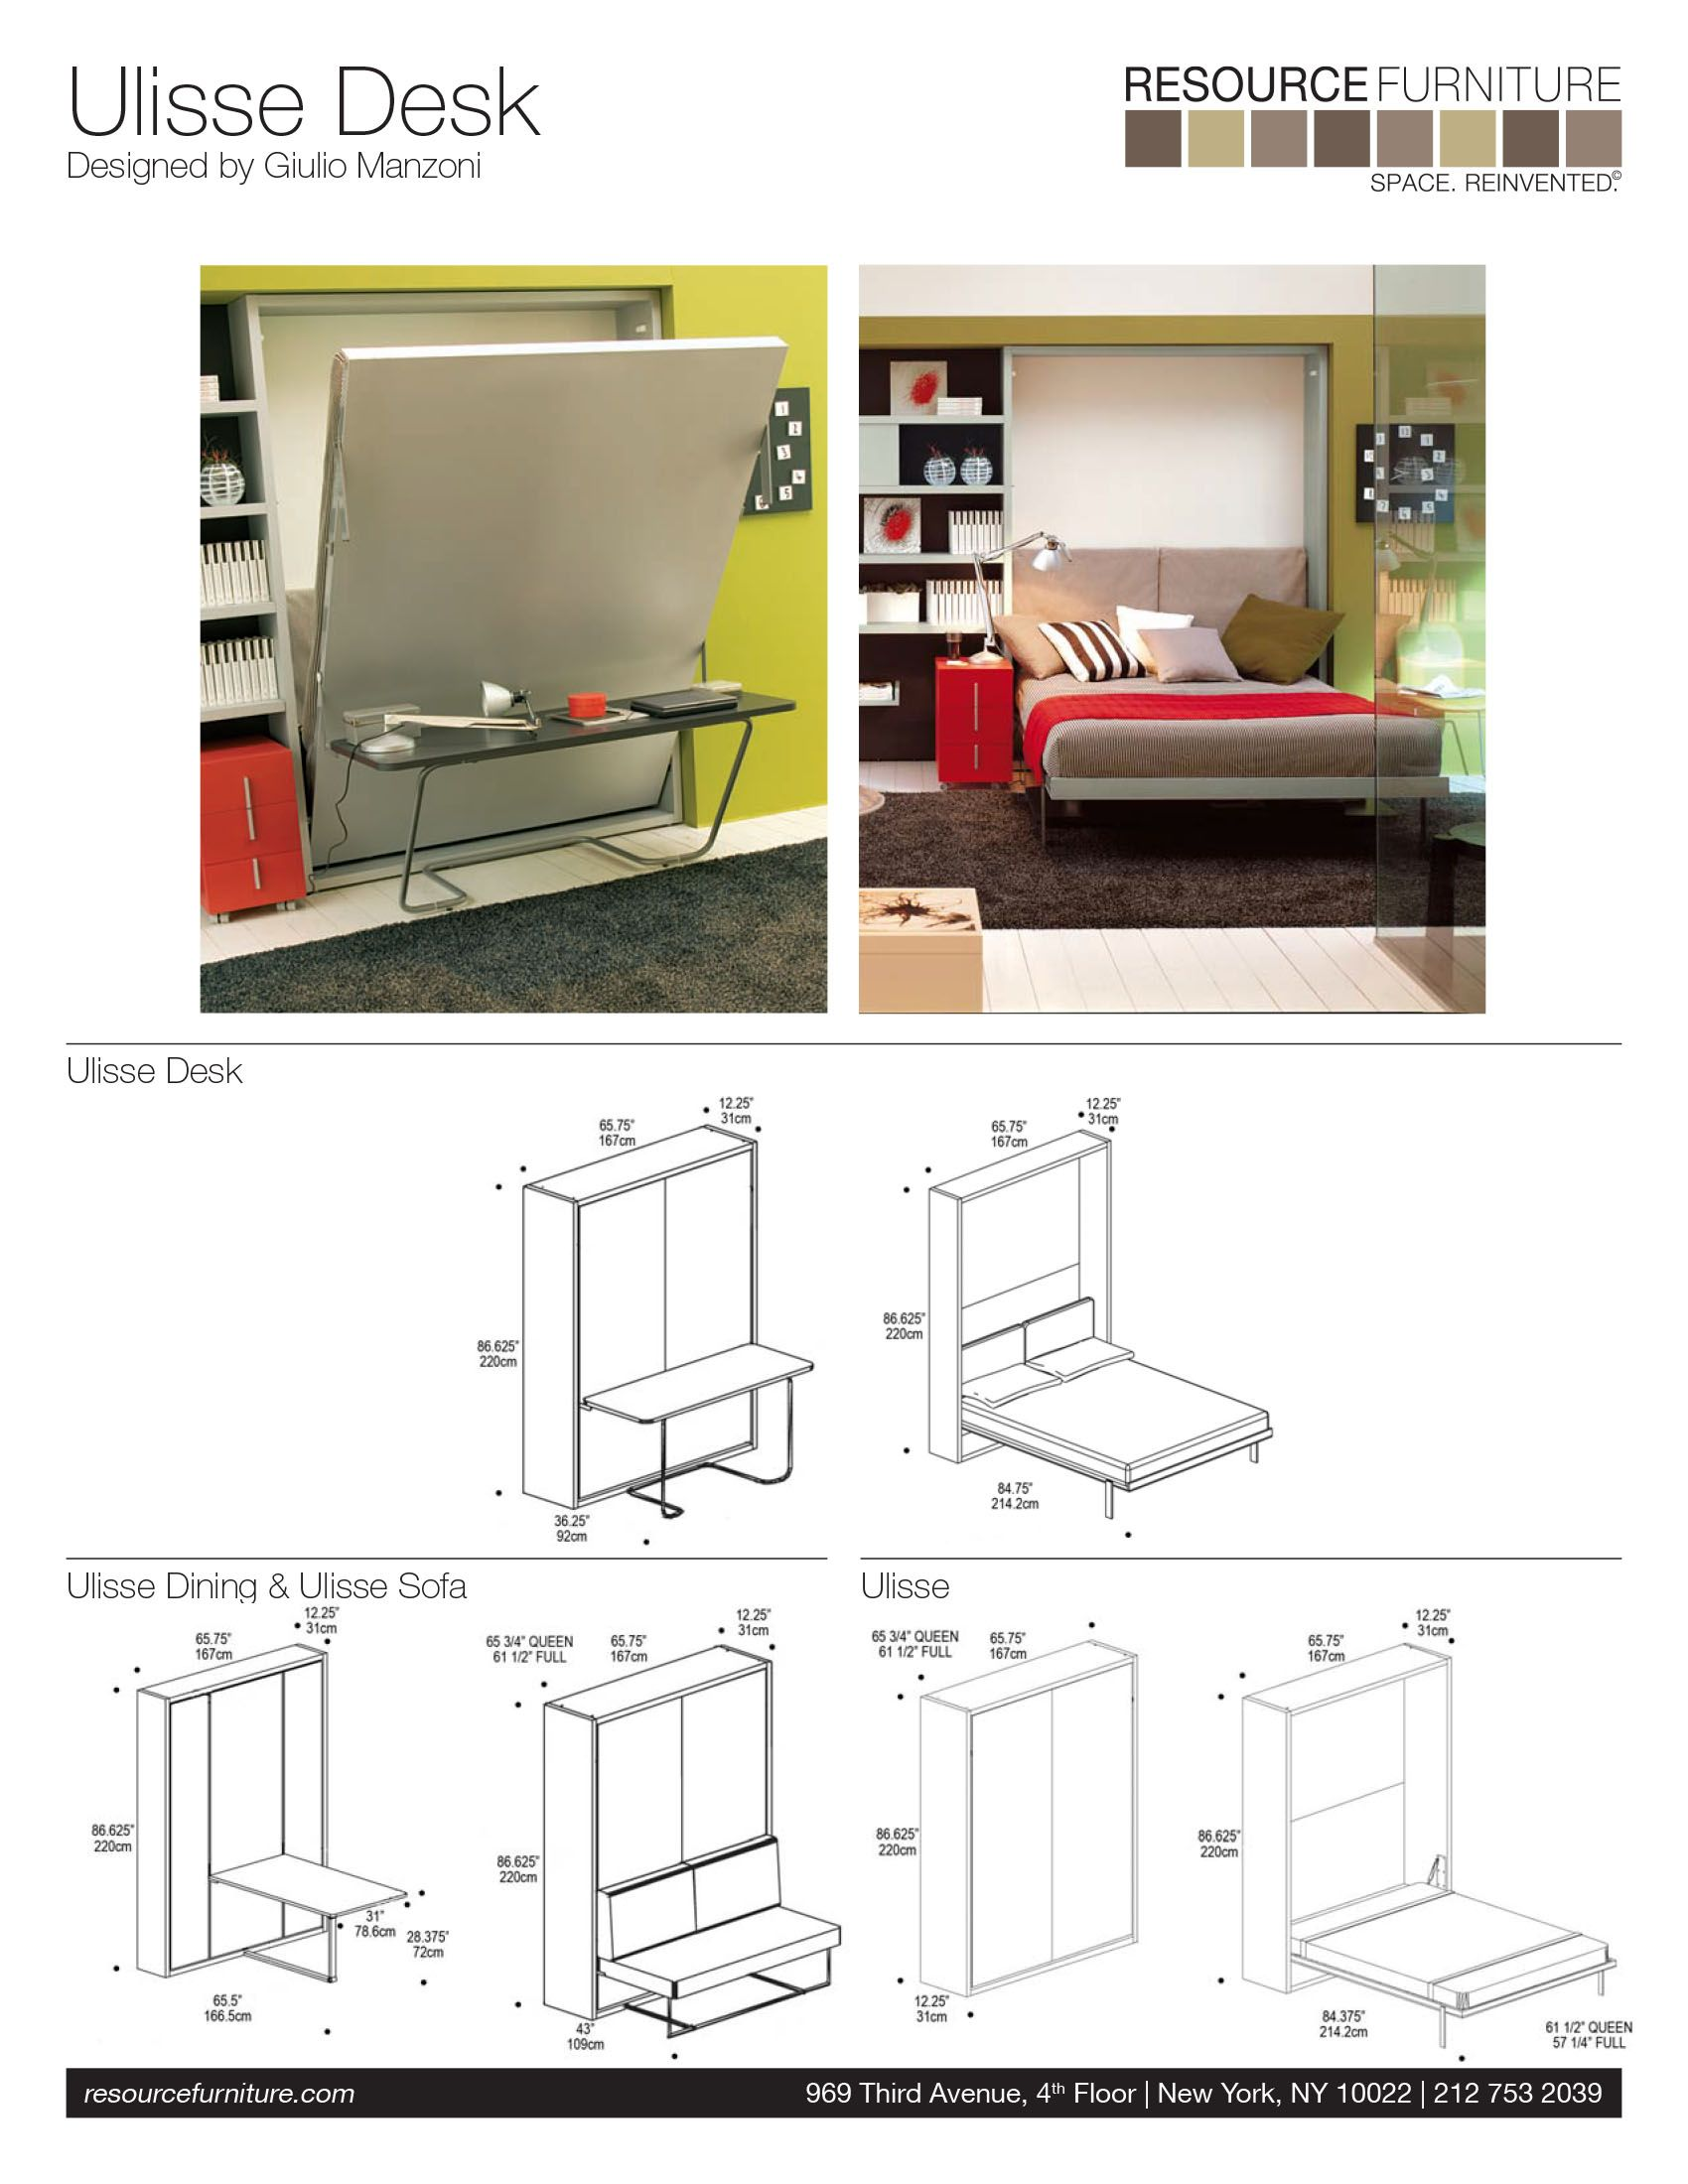 Ulisse Desk Resource Furniture Wall, How To Build A Murphy Bed With Desk